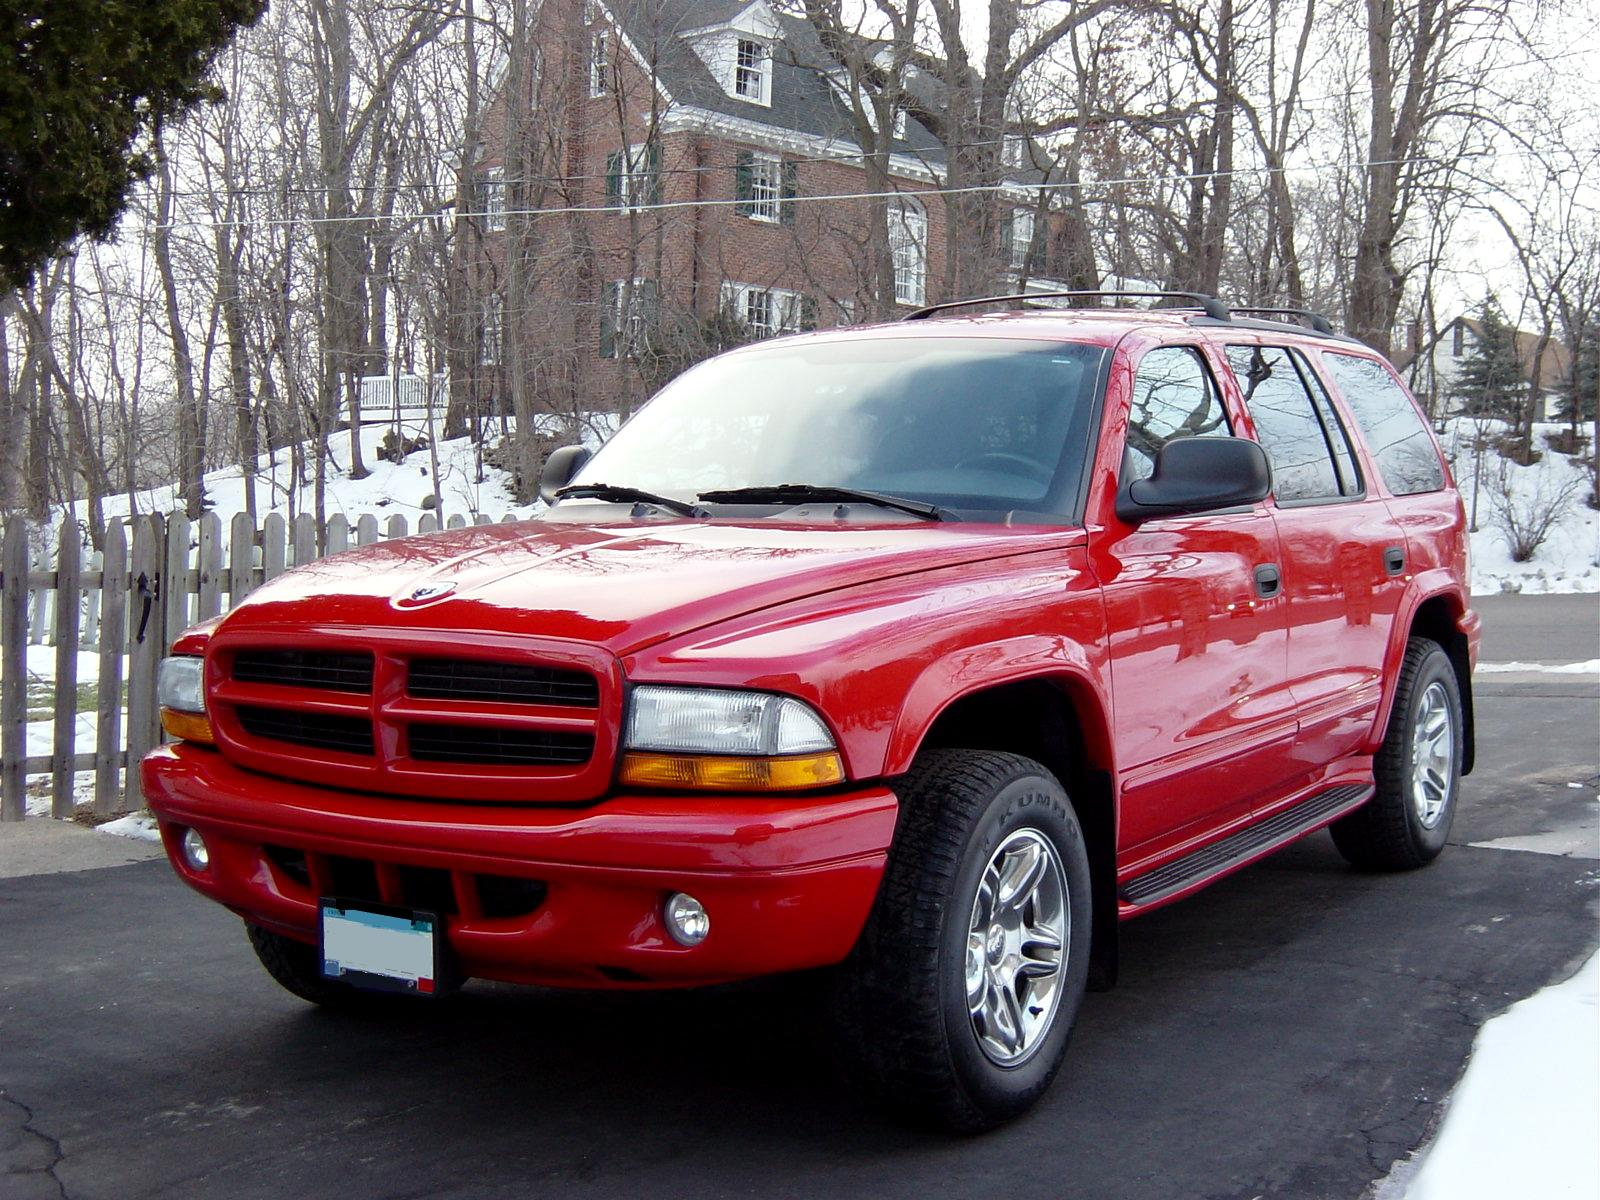 Dodge Durango photo 11